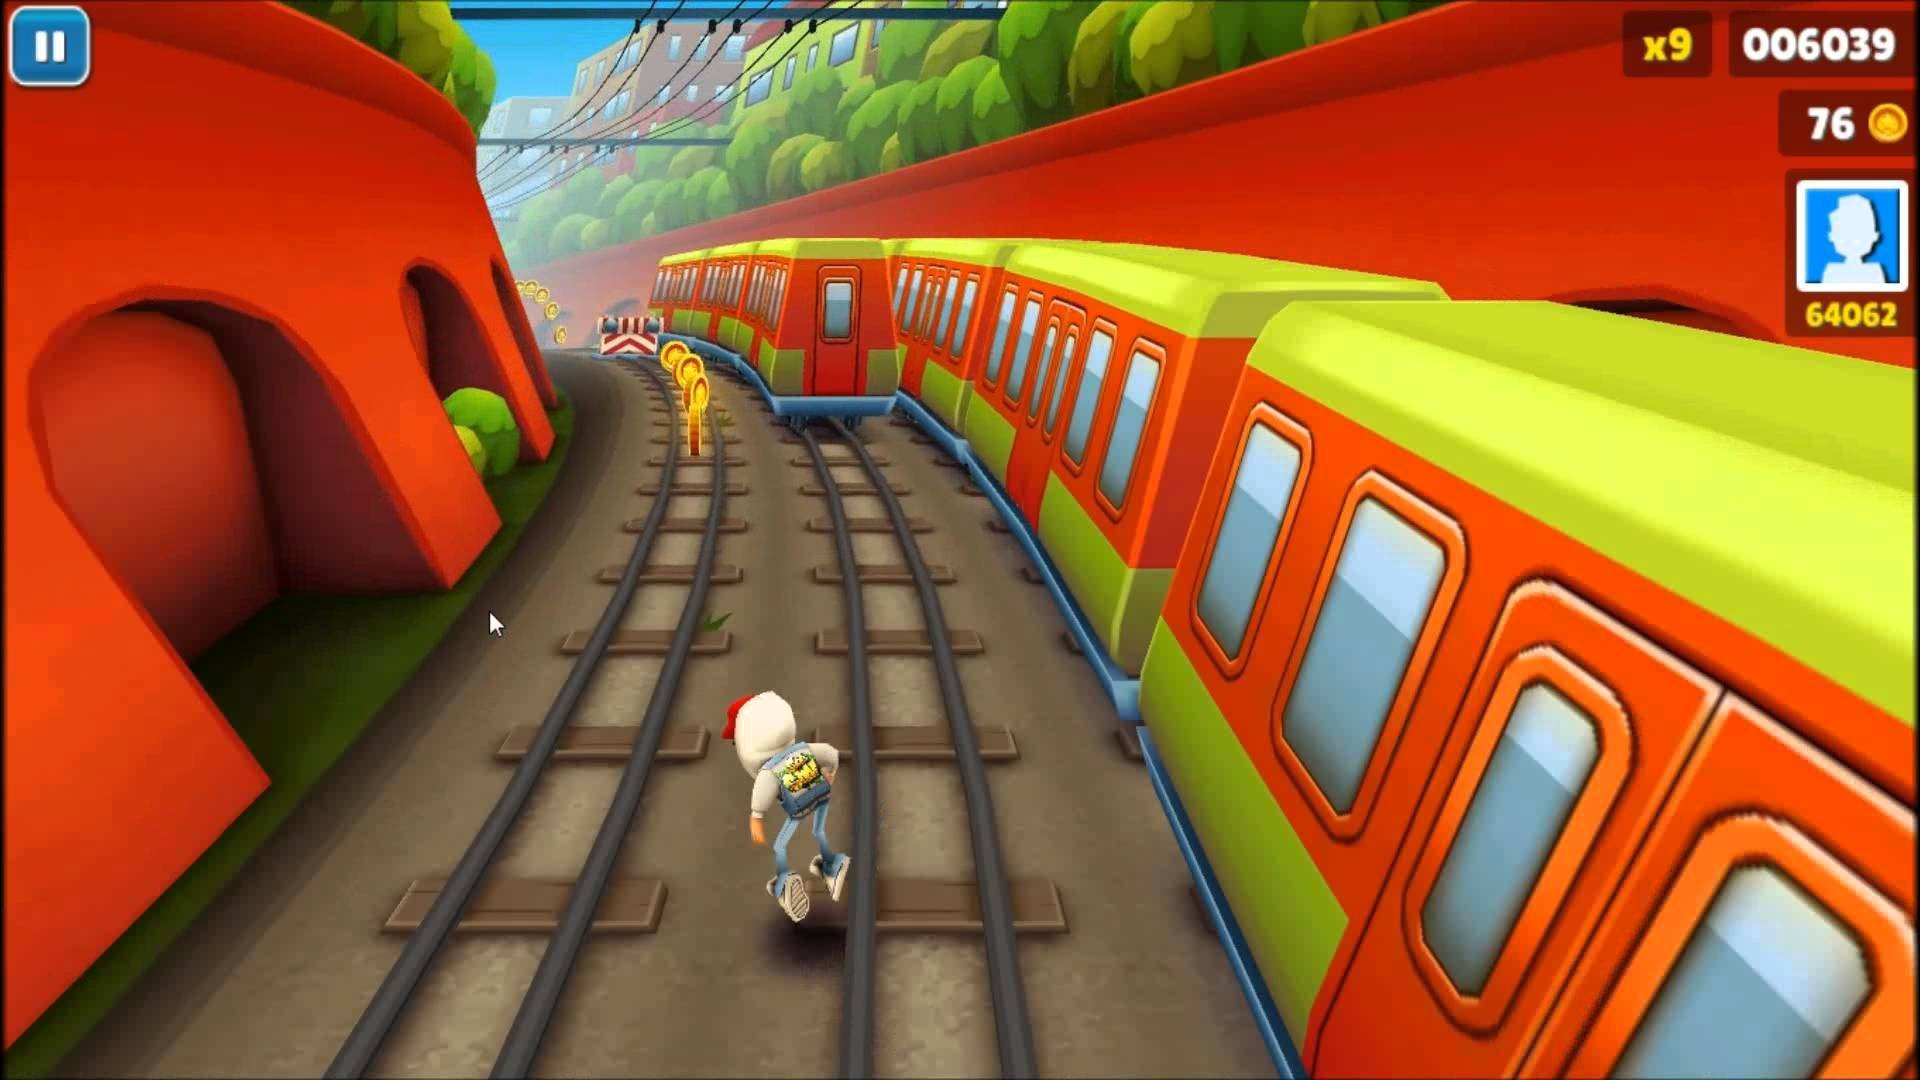 Download-Subway-Surfers-000031